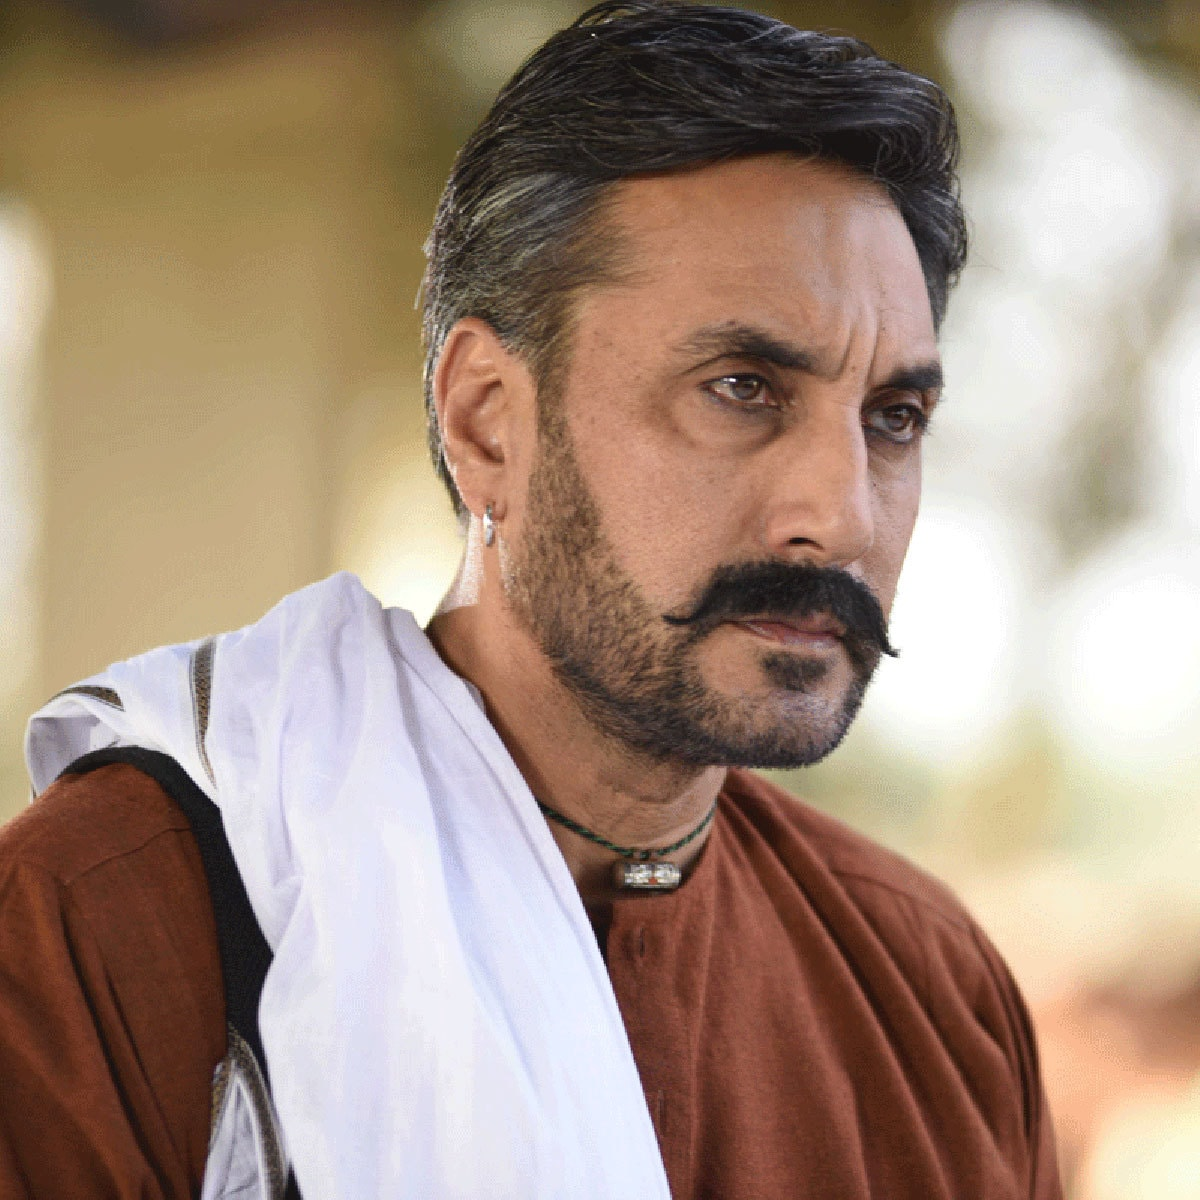 Adnan Siddiqui plays Rashid Chand, Chaudhry's conflicted slave/enforcer